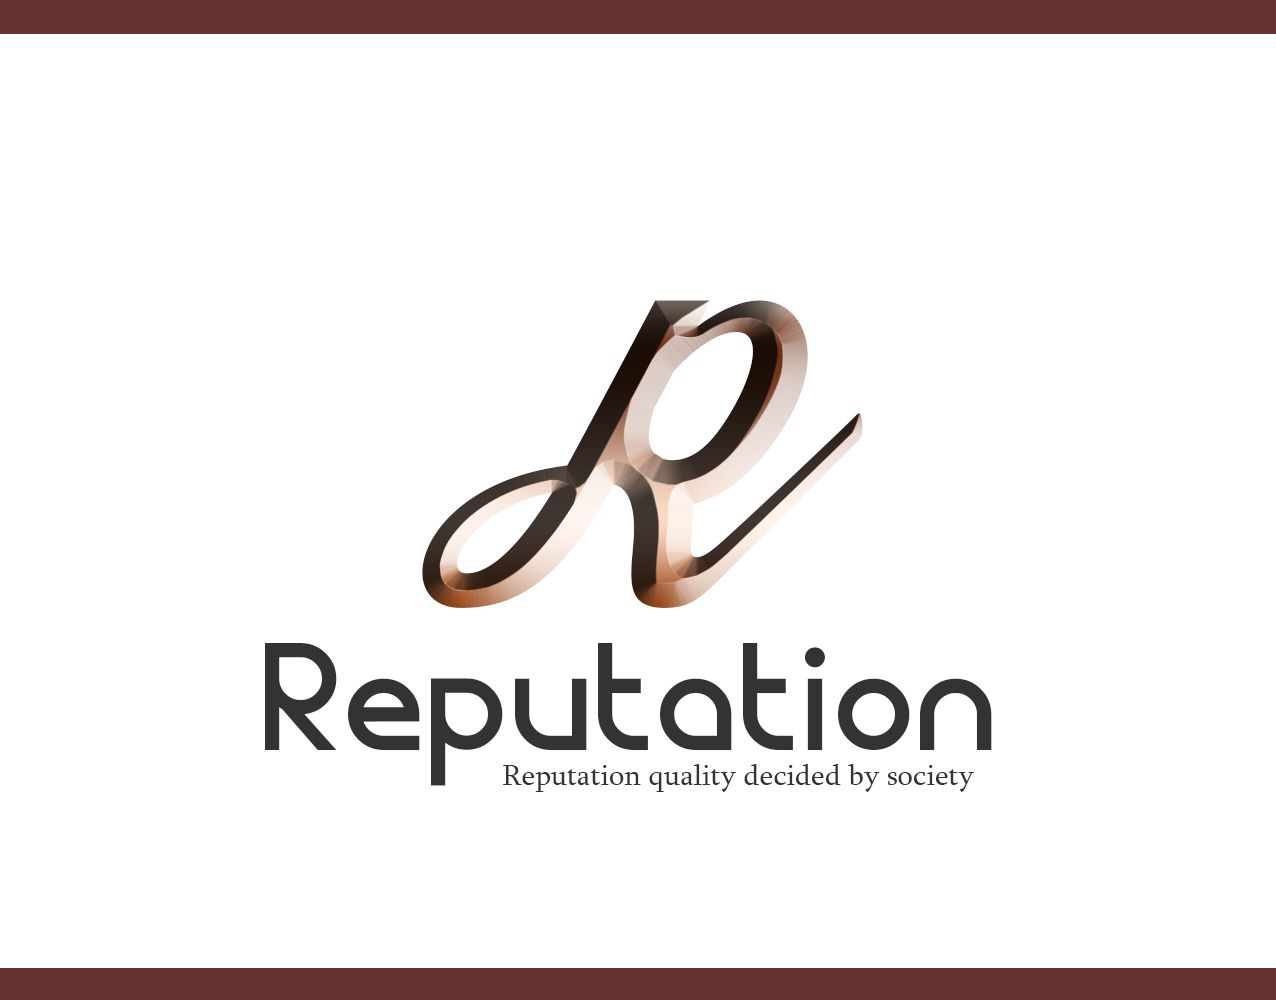 Логотип, визитка и шаблон презентации Reputation - дизайнер optimuzzy